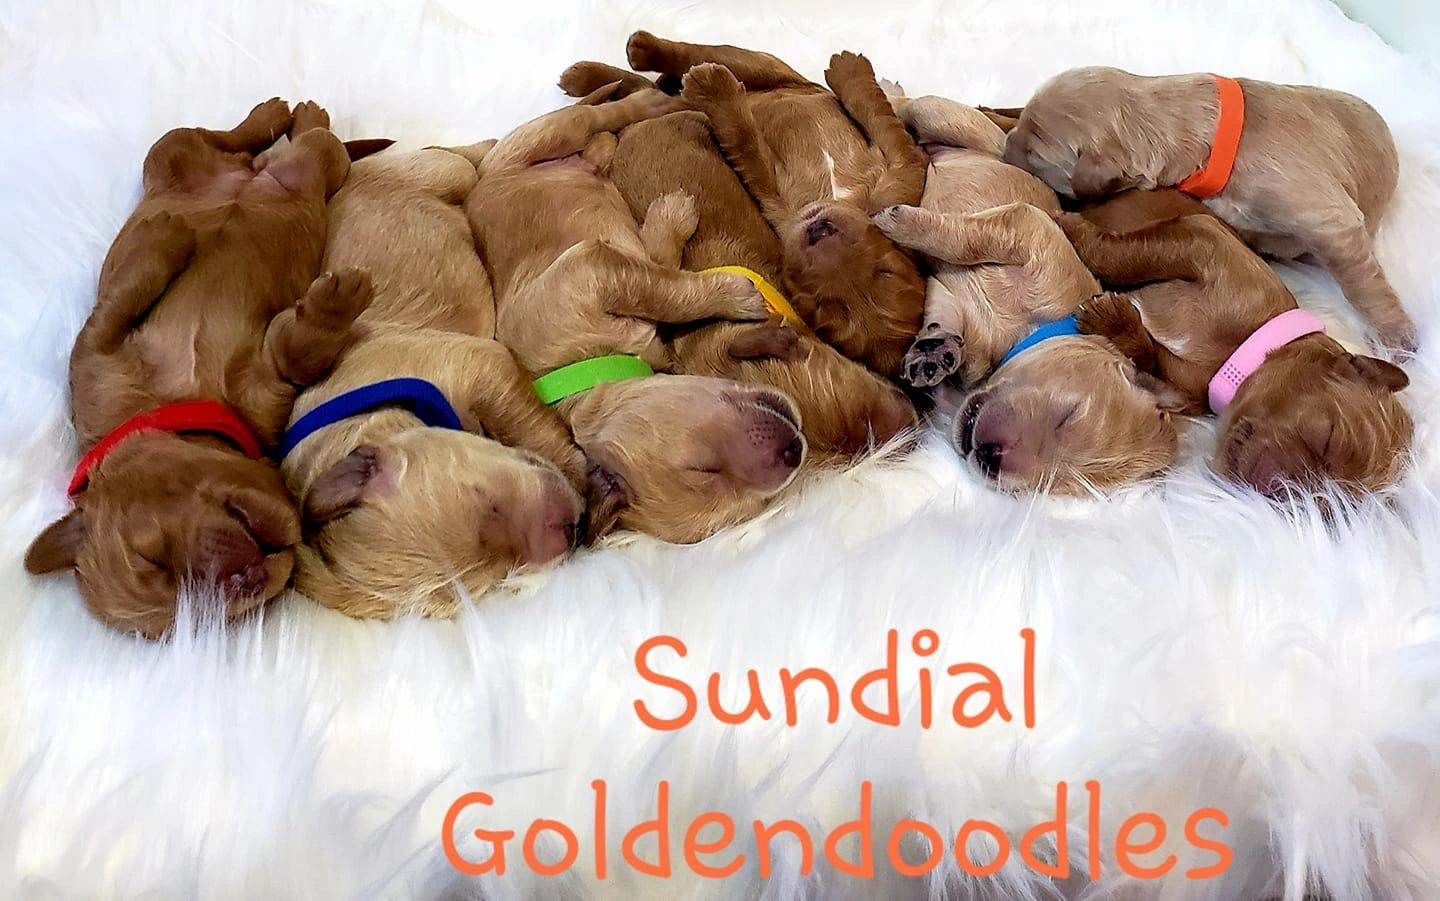 Sundial Goldendoodles - Goldendoodle, Puppies, Breeder